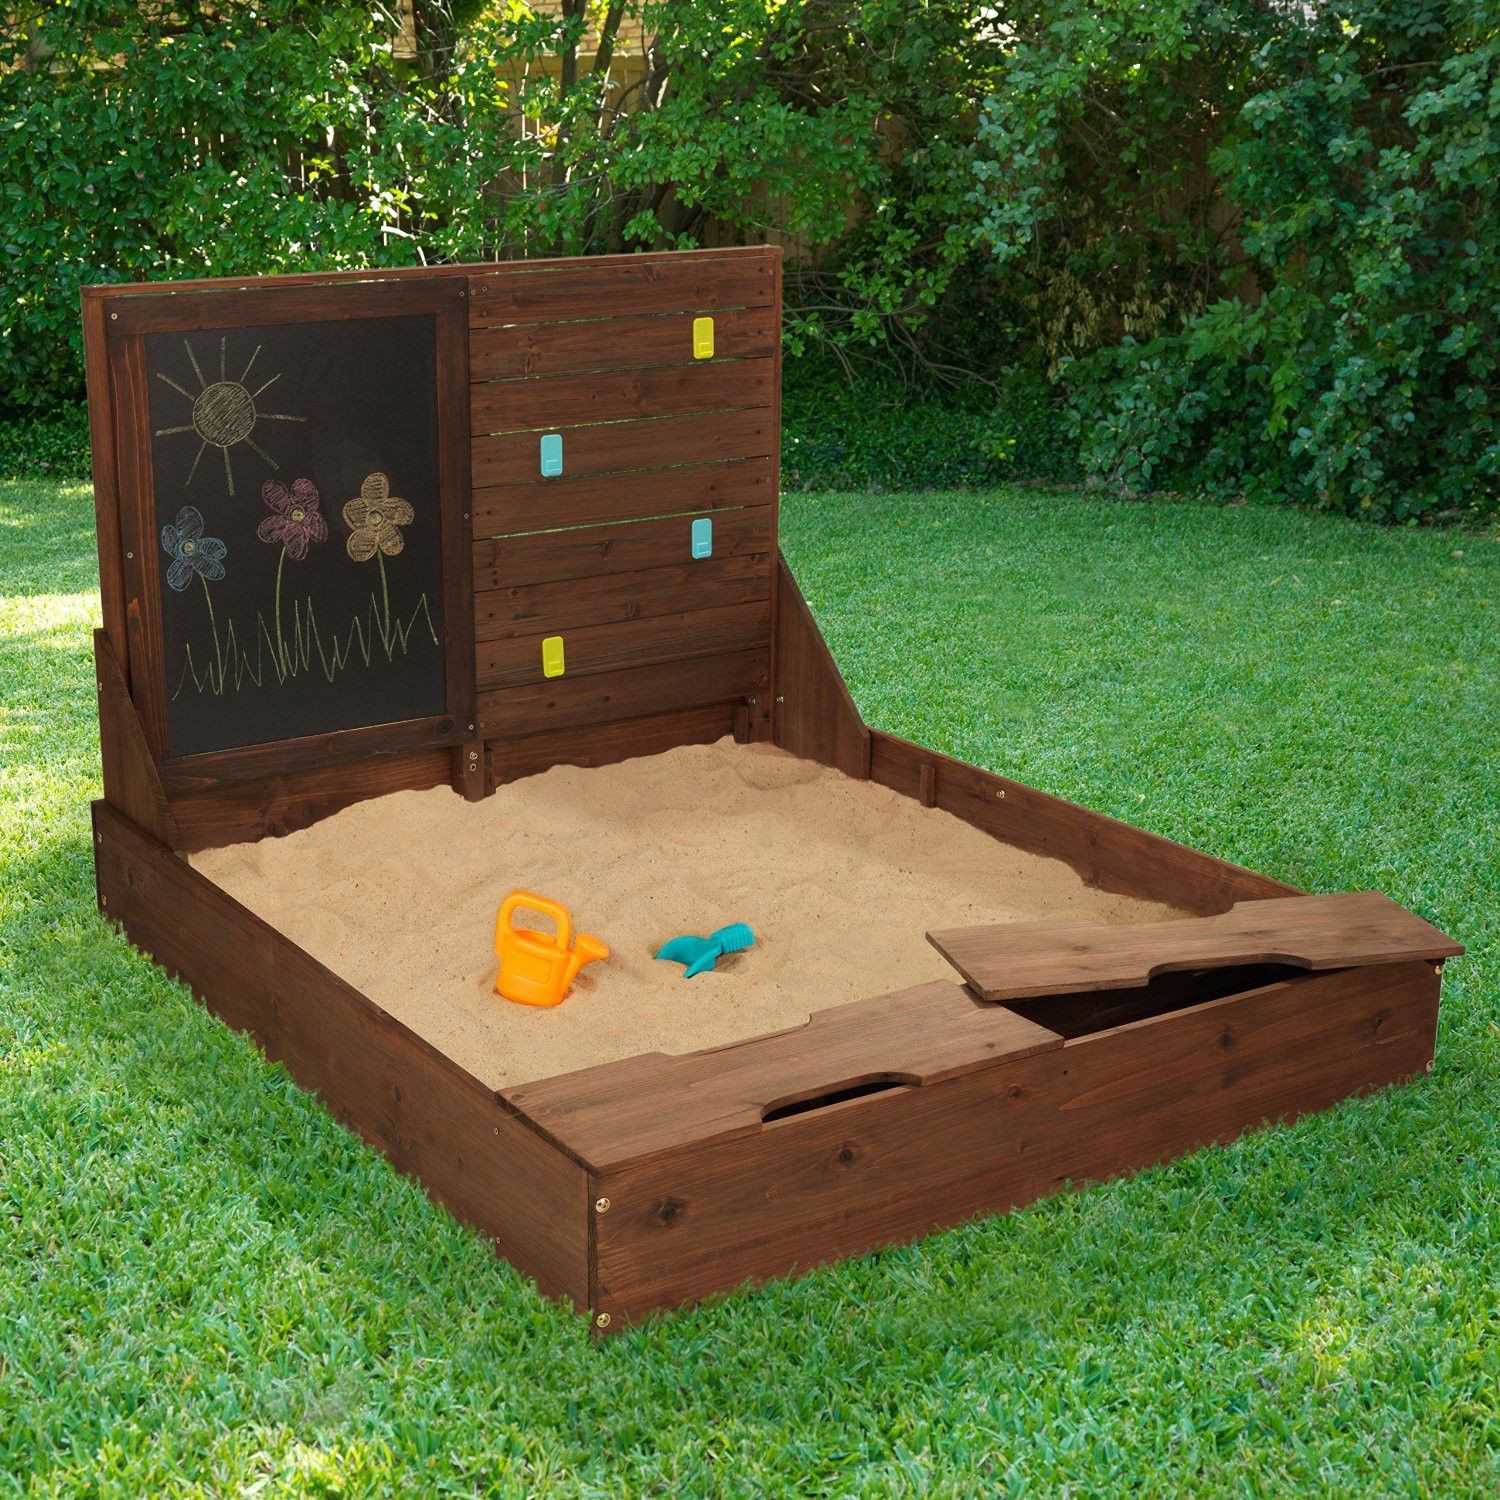 Best ideas about DIY Kids Sandbox . Save or Pin Activity Sandbox Bring the beach to your backyard with Now.